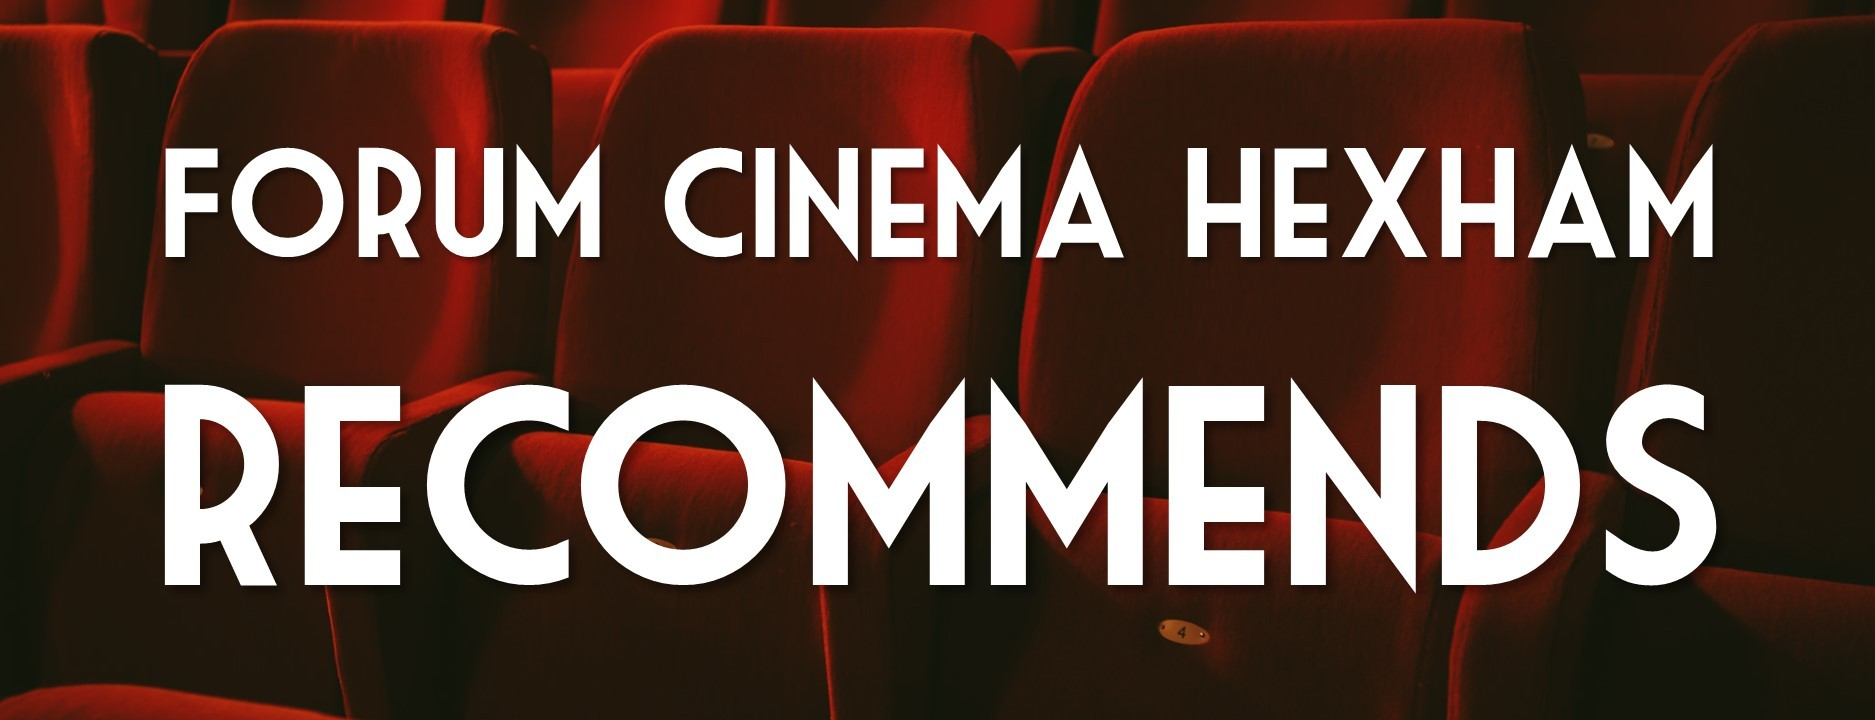 FCH RECOMMENDS - FILMS TO STREAM ONLINE